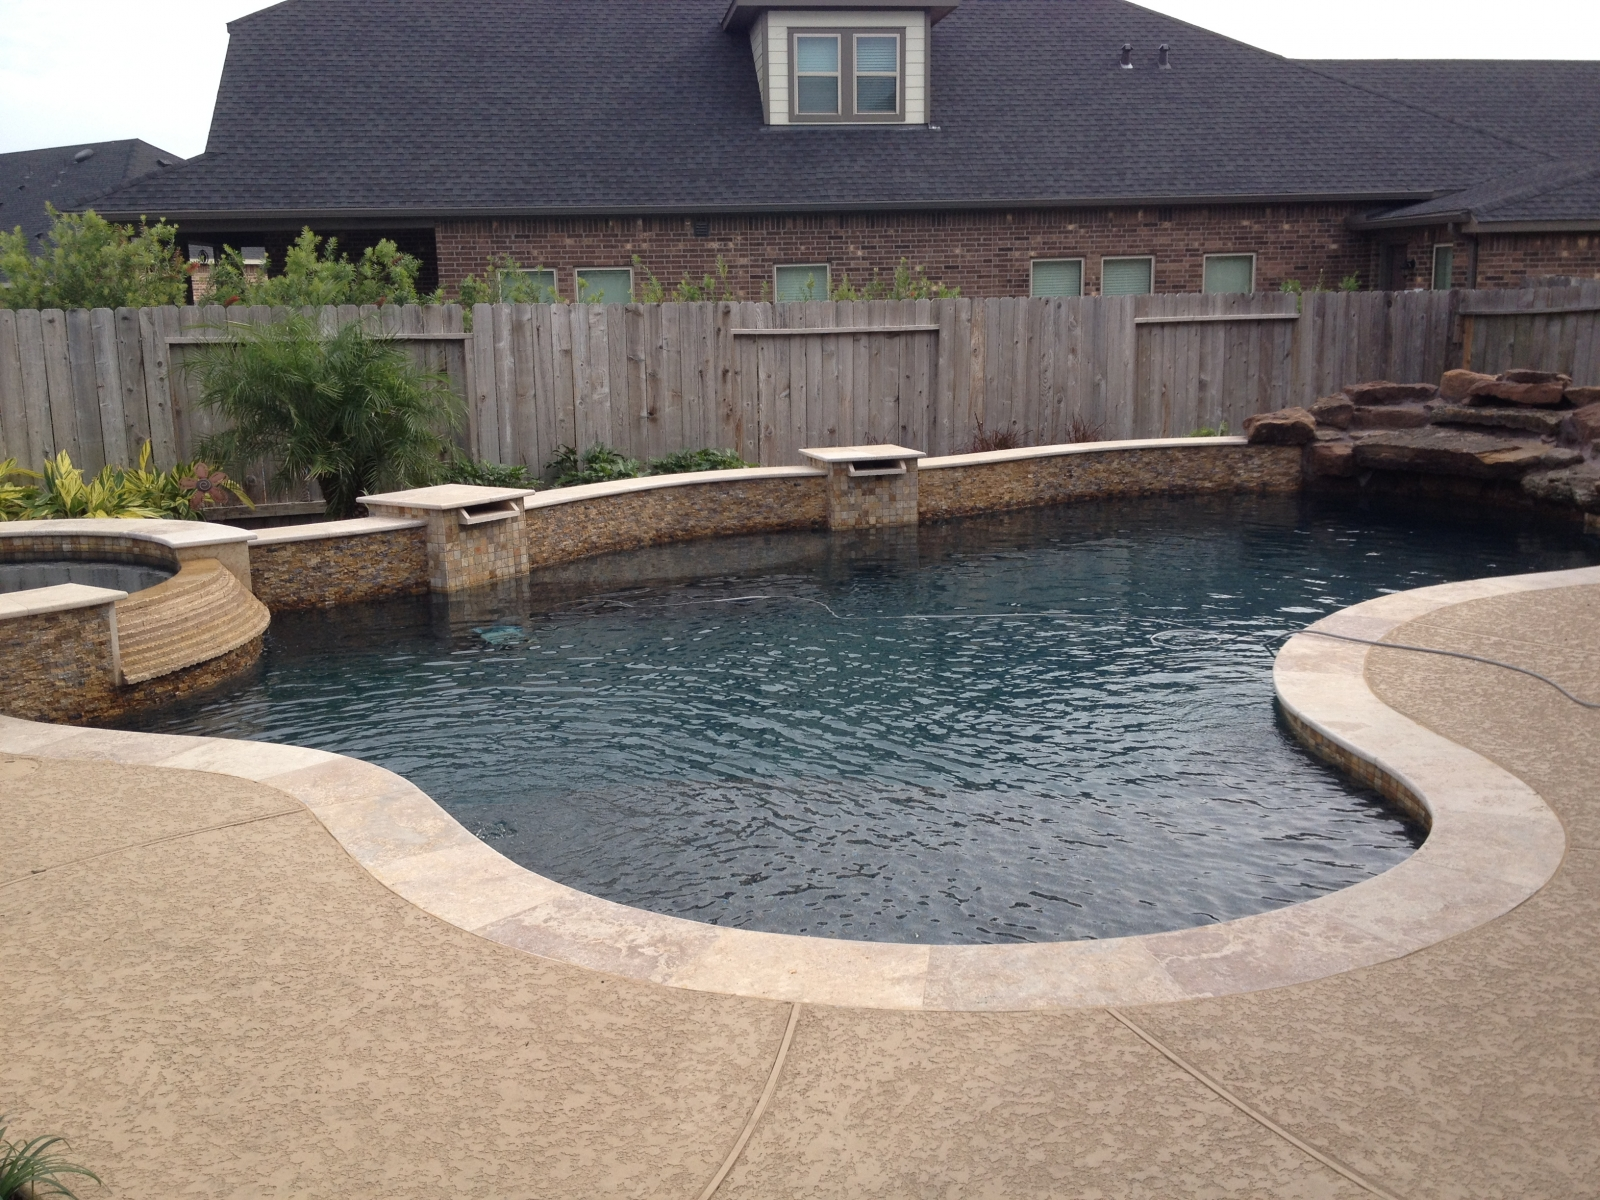 Freeform Pool with Spa, Scuppers, and Rock Grotto Waterfall